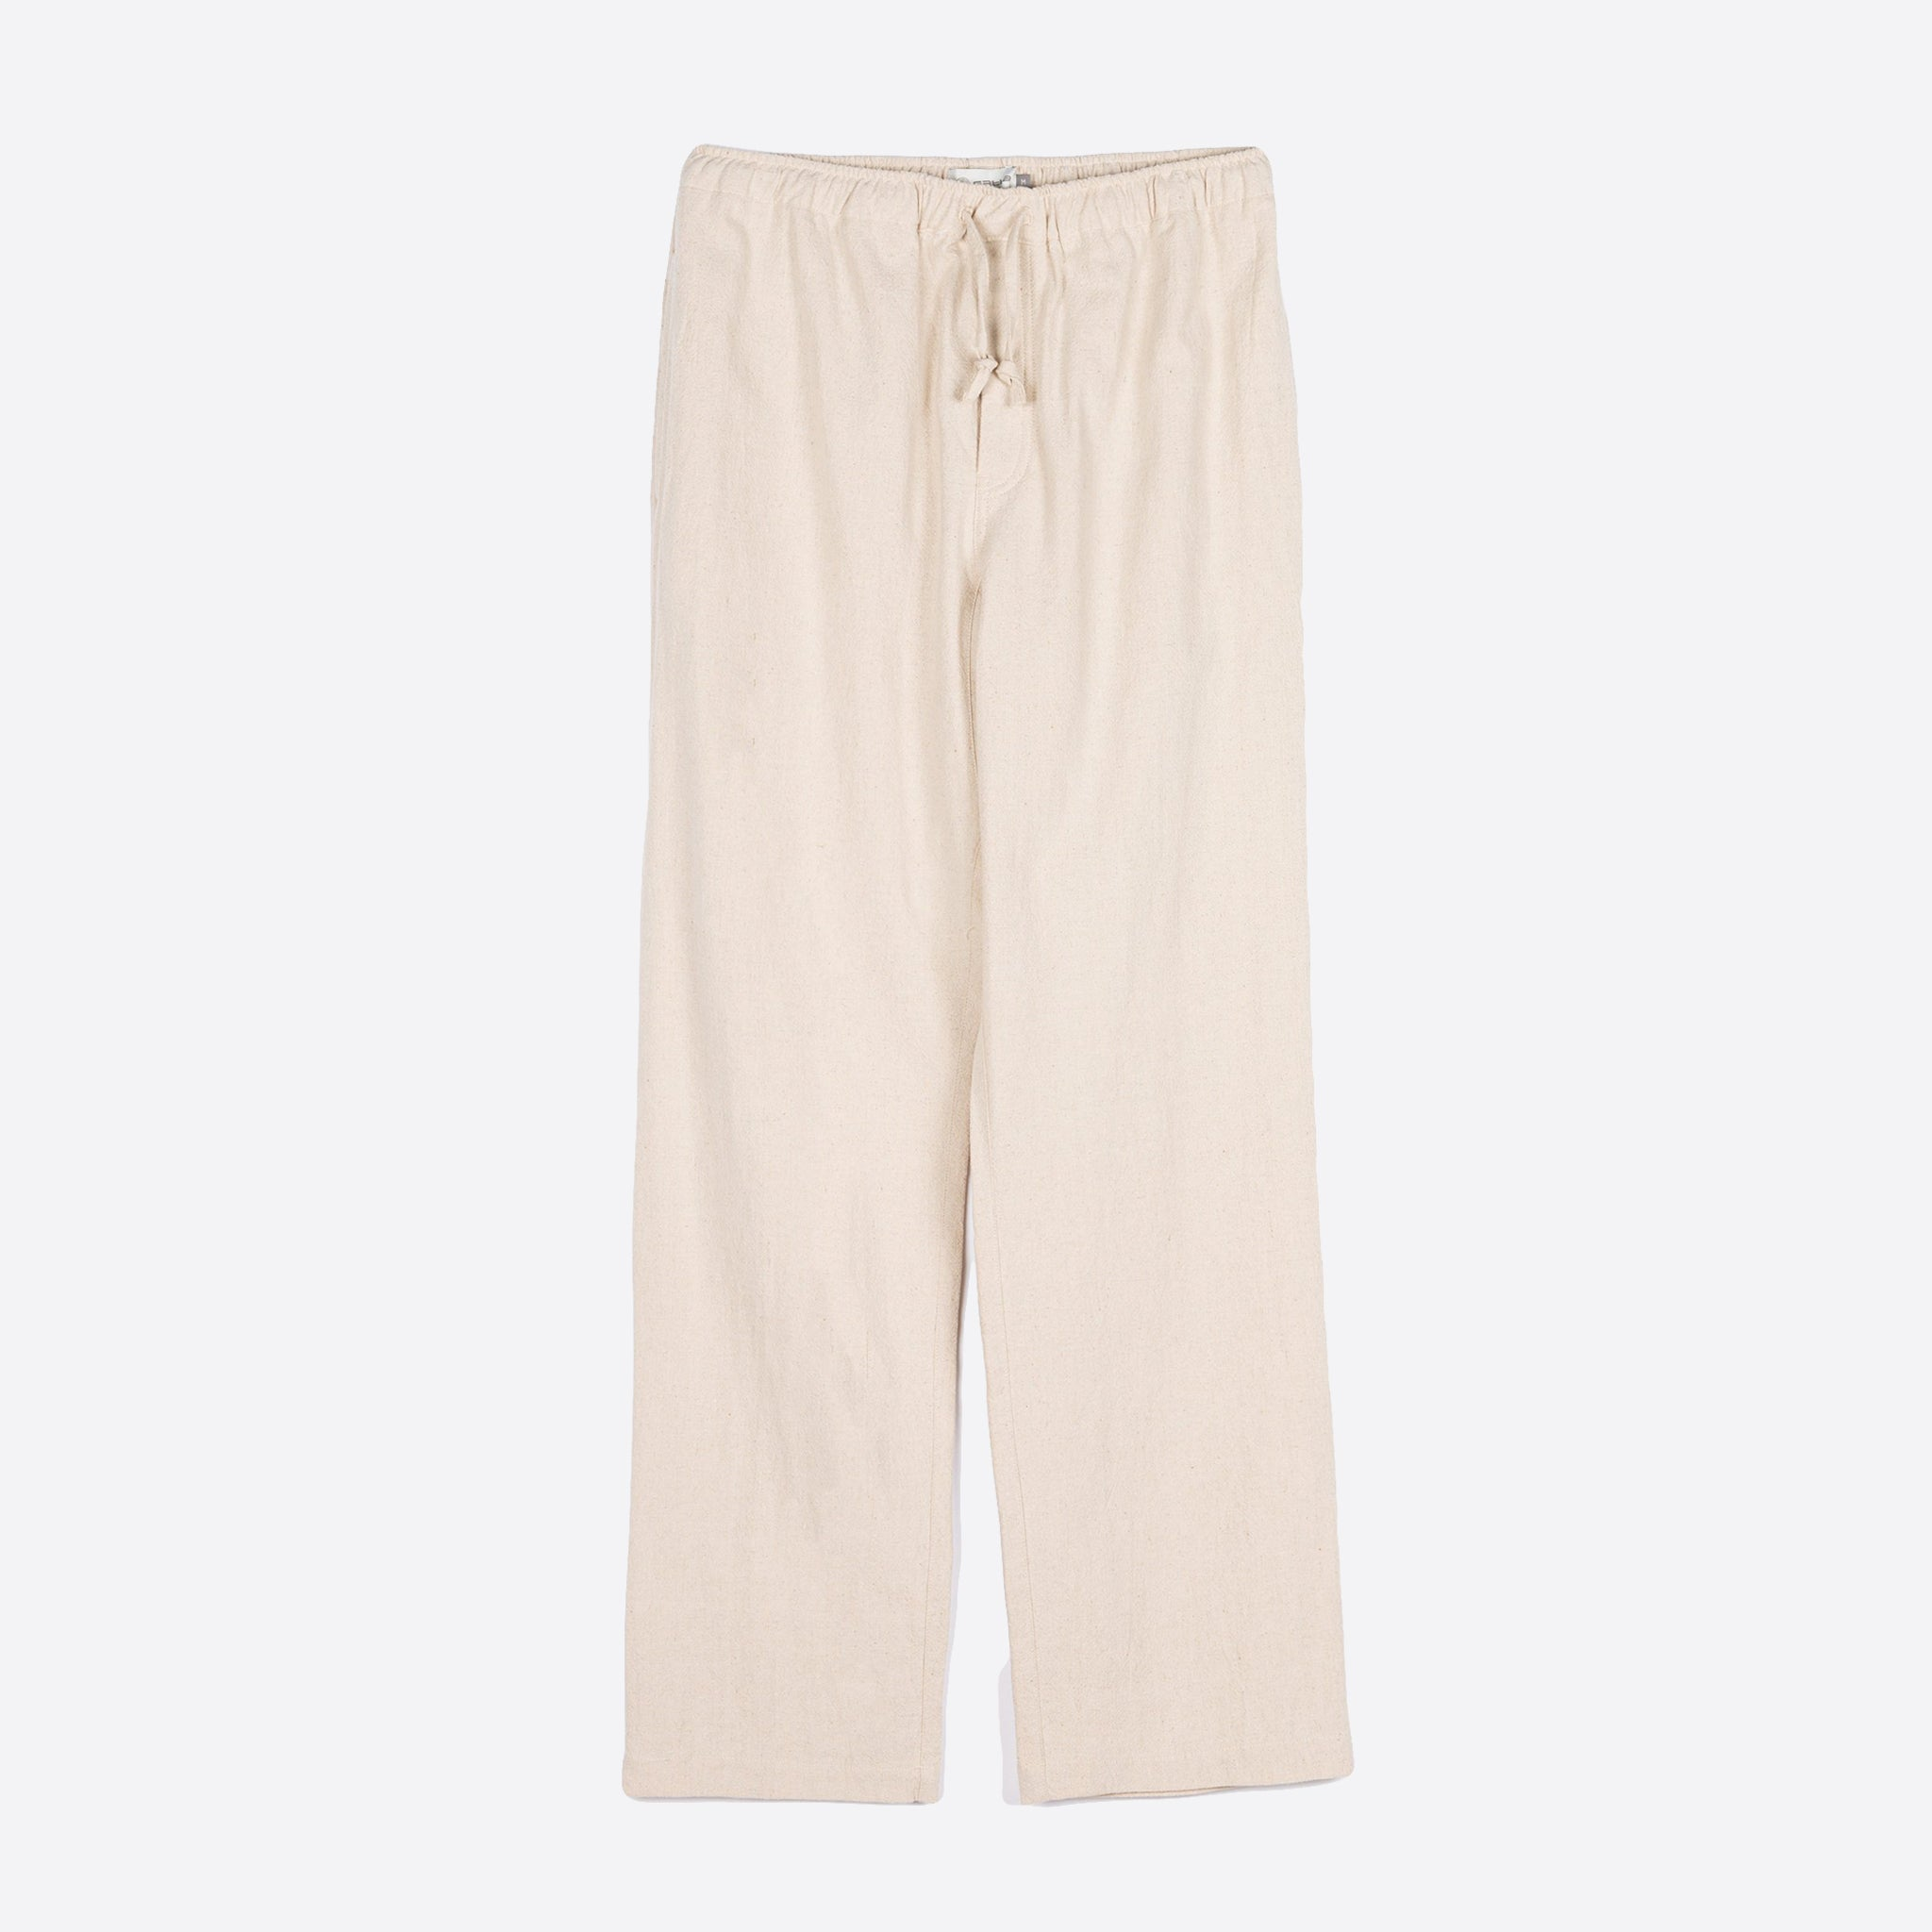 Satta Linen Flow Pants in Undyed Ecru